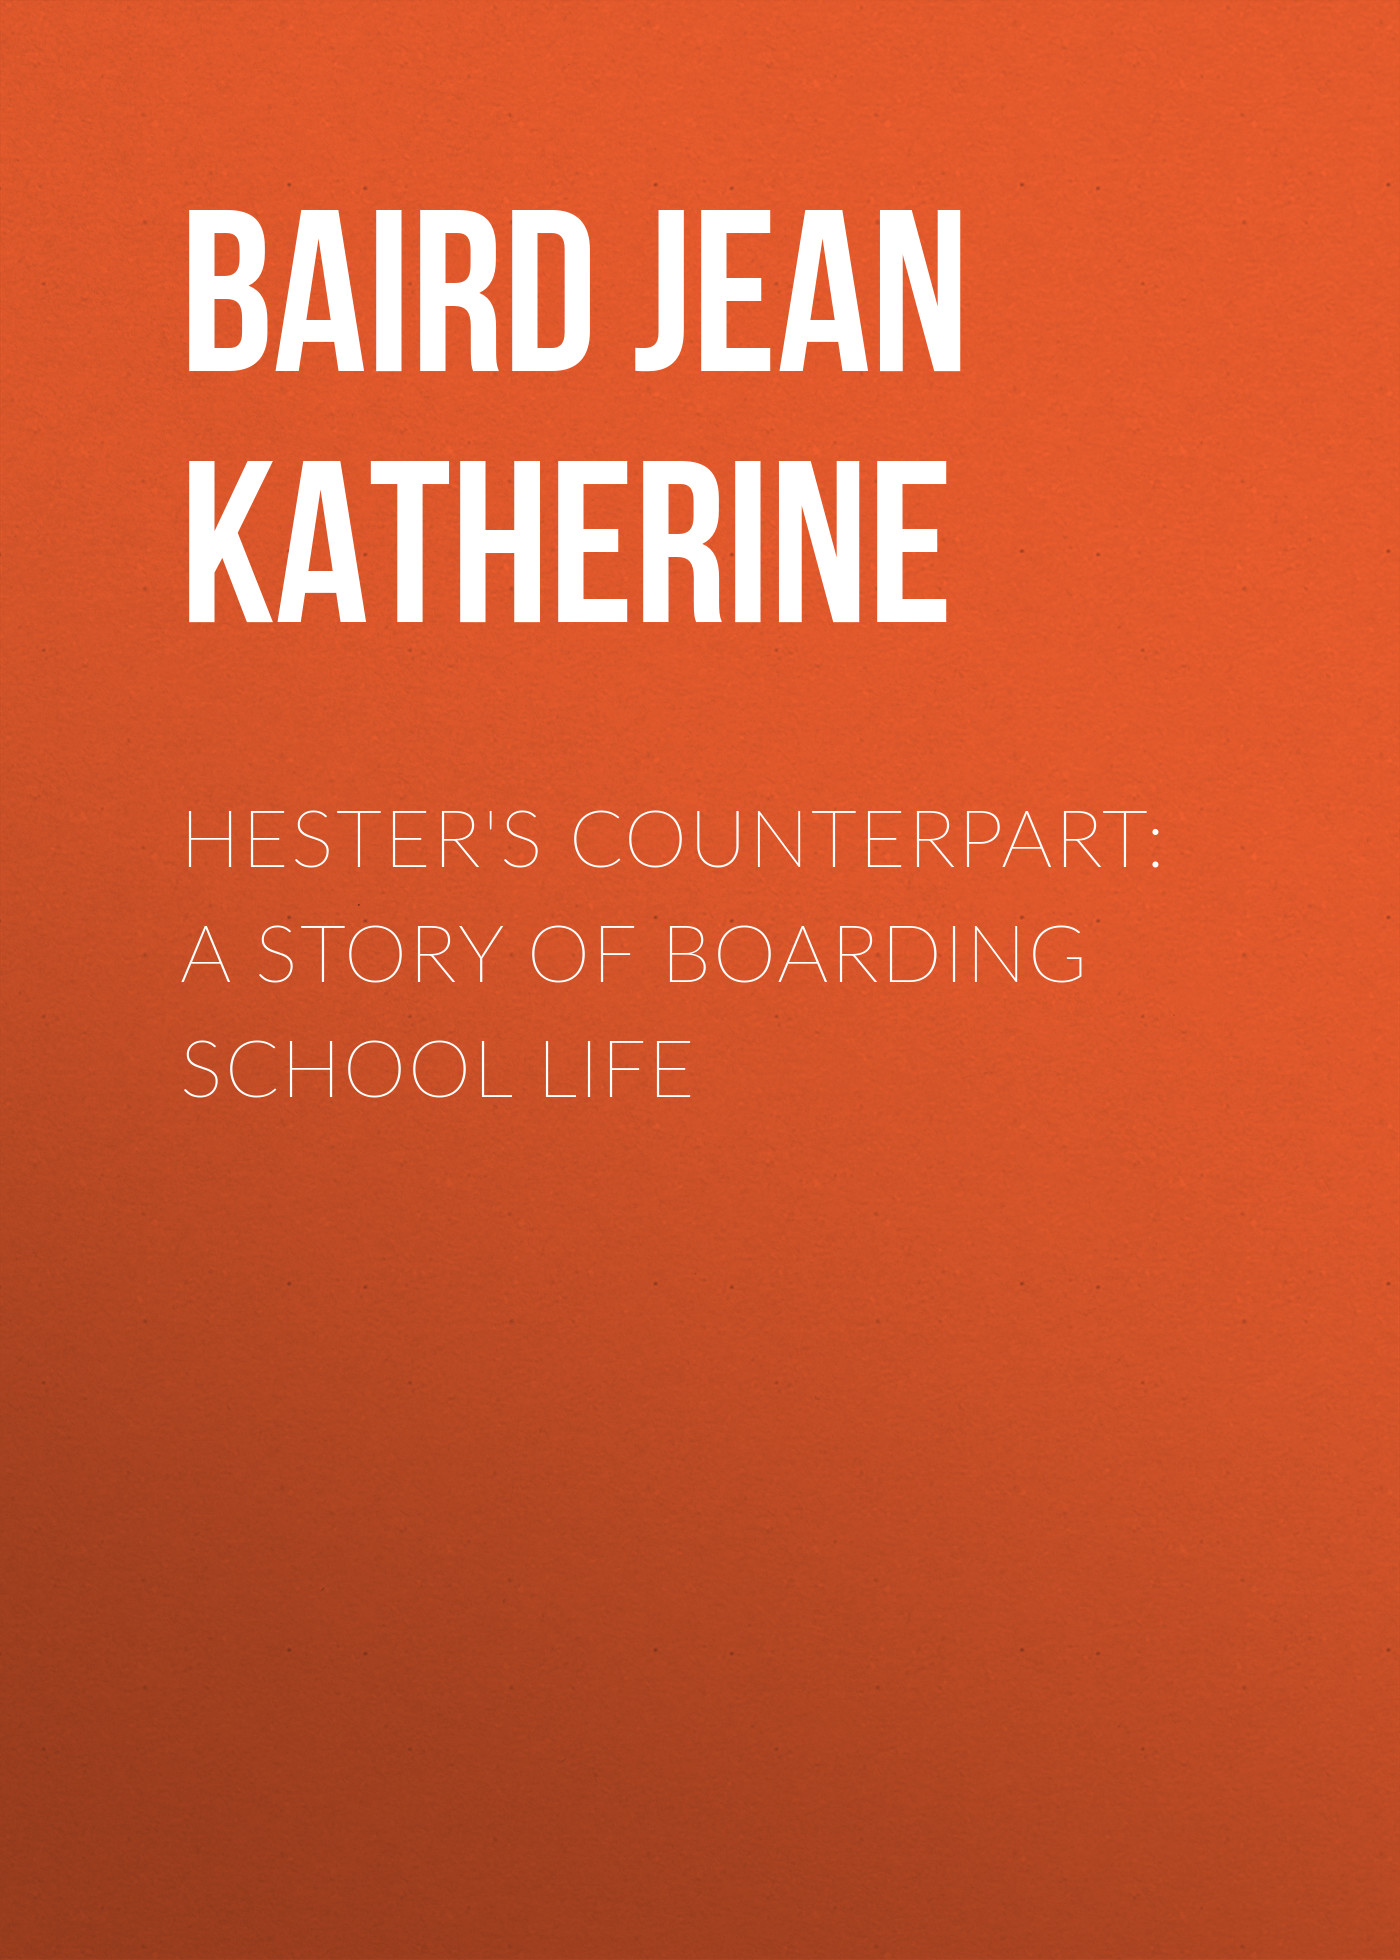 цена на Baird Jean Katherine Hester's Counterpart: A Story of Boarding School Life